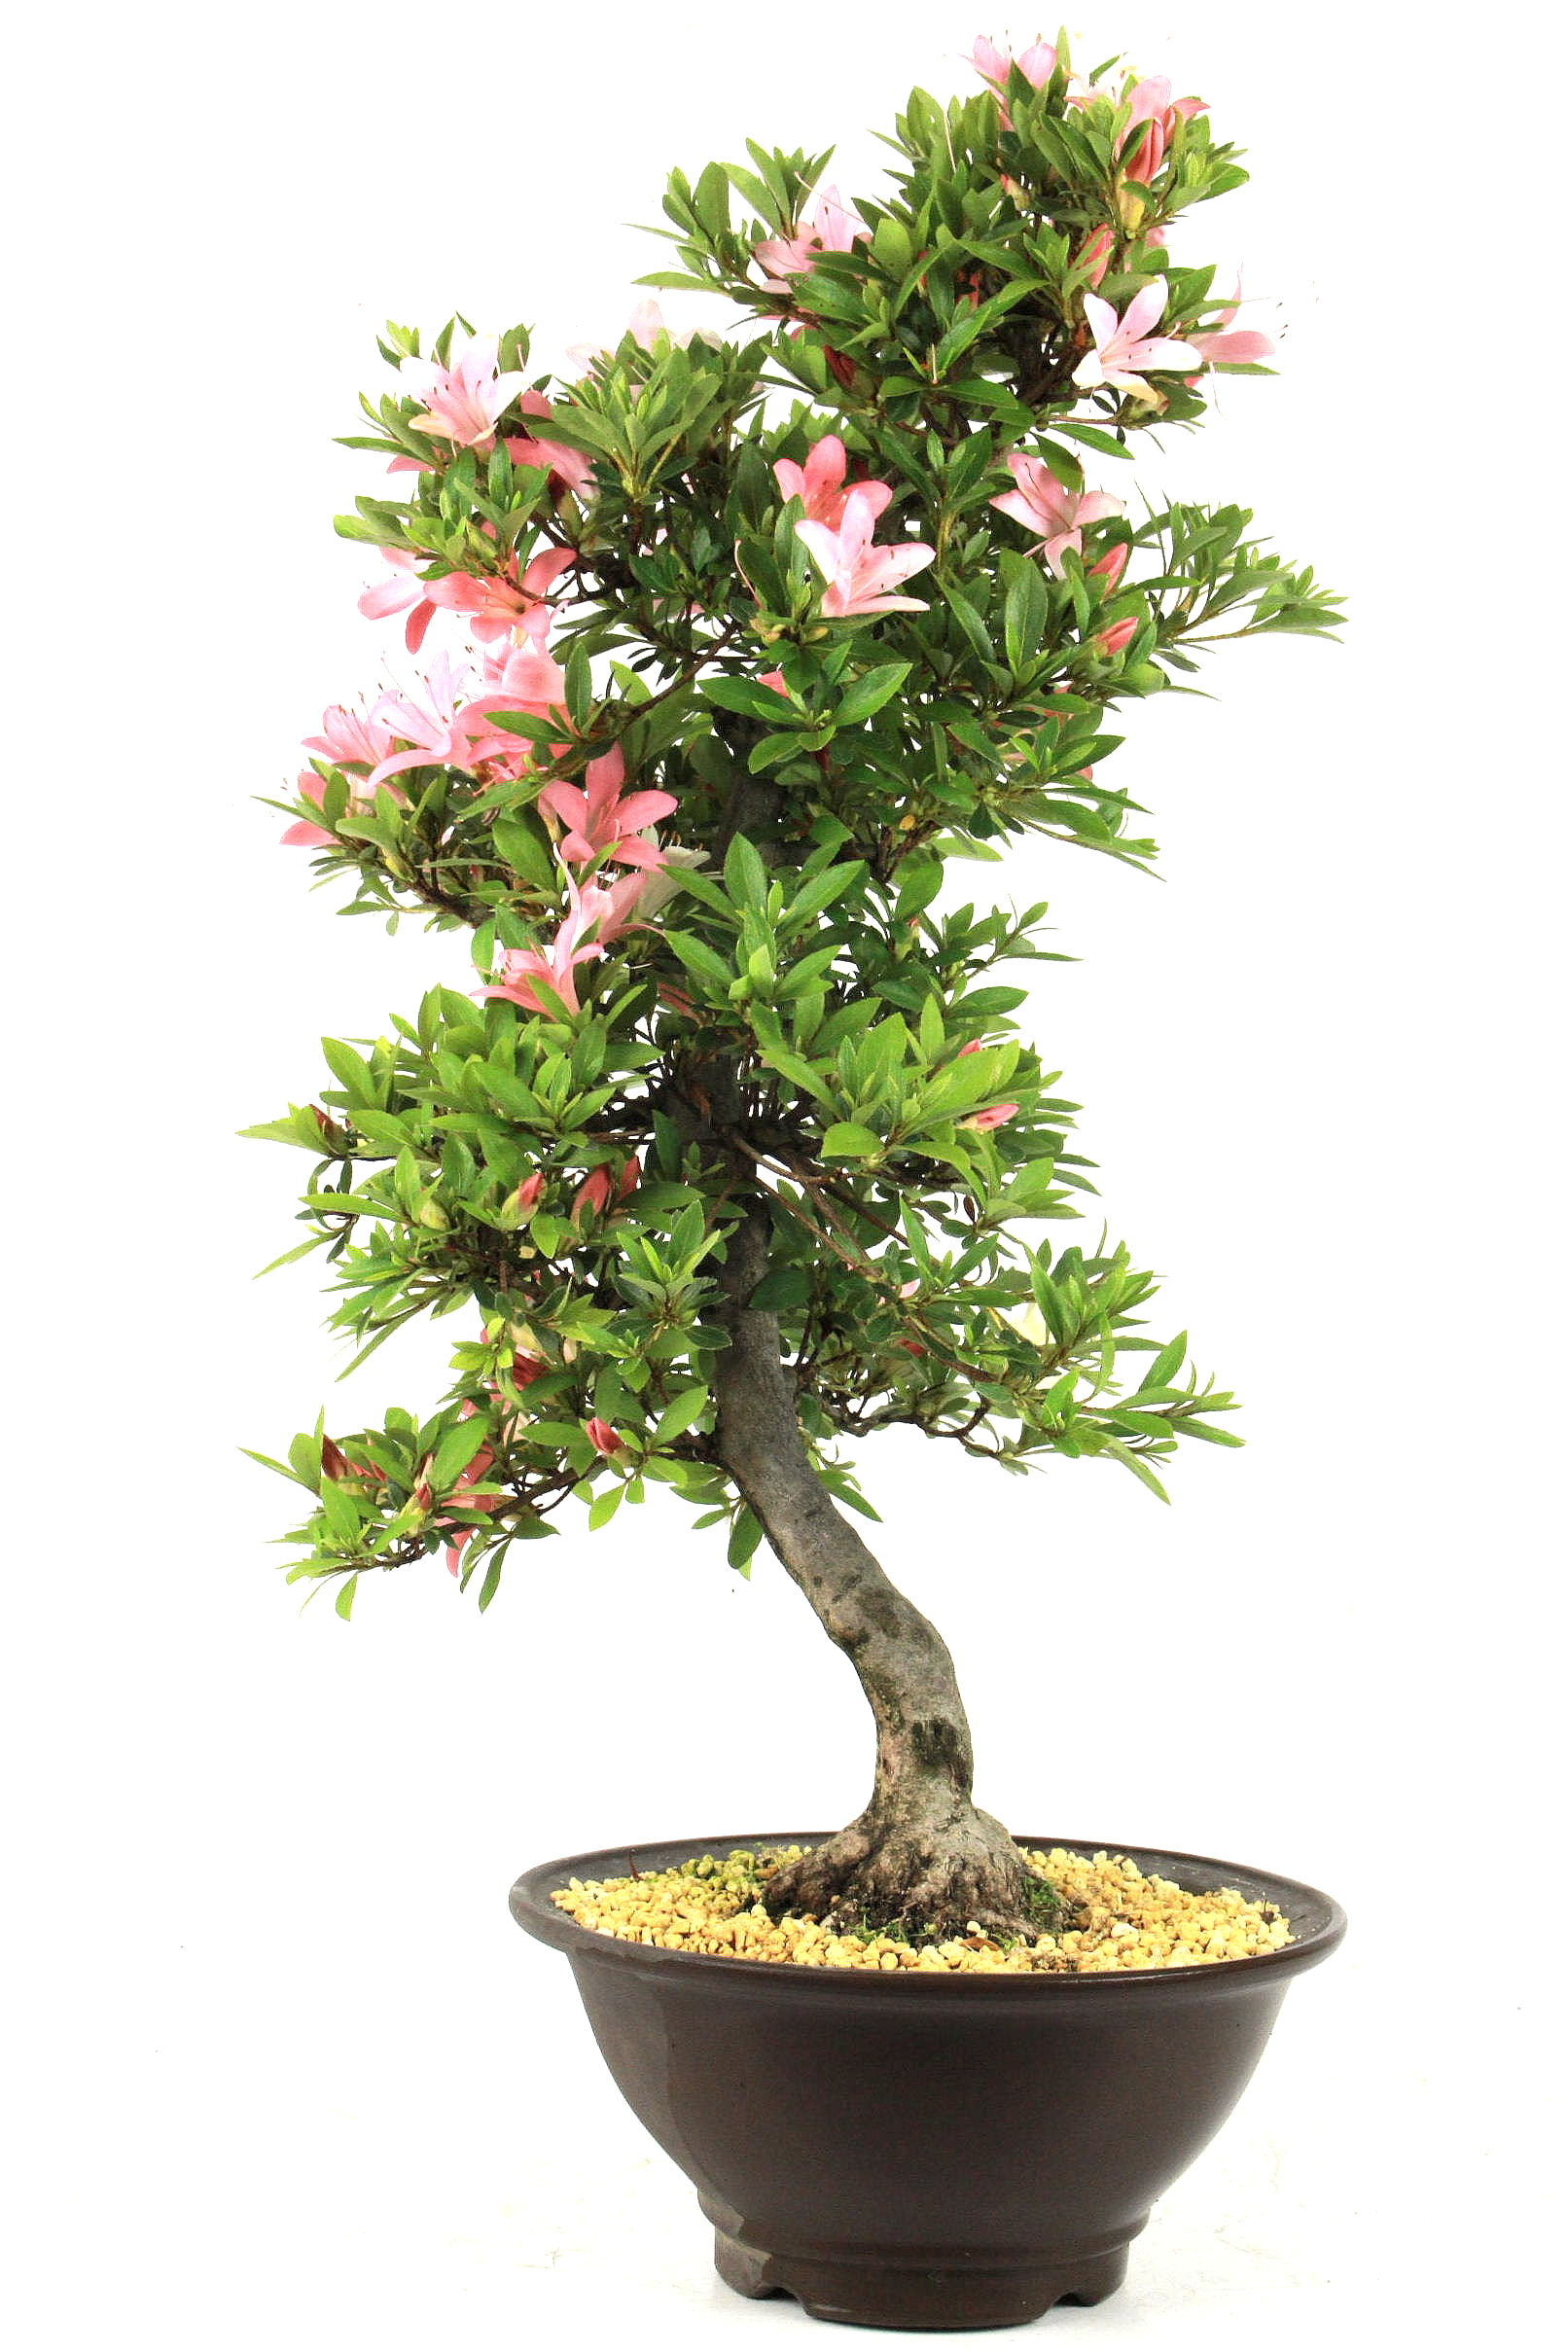 Azalee rhododendron indicum 61 cm 222 bei oyaki bonsai kaufen for Bonsai onlineshop